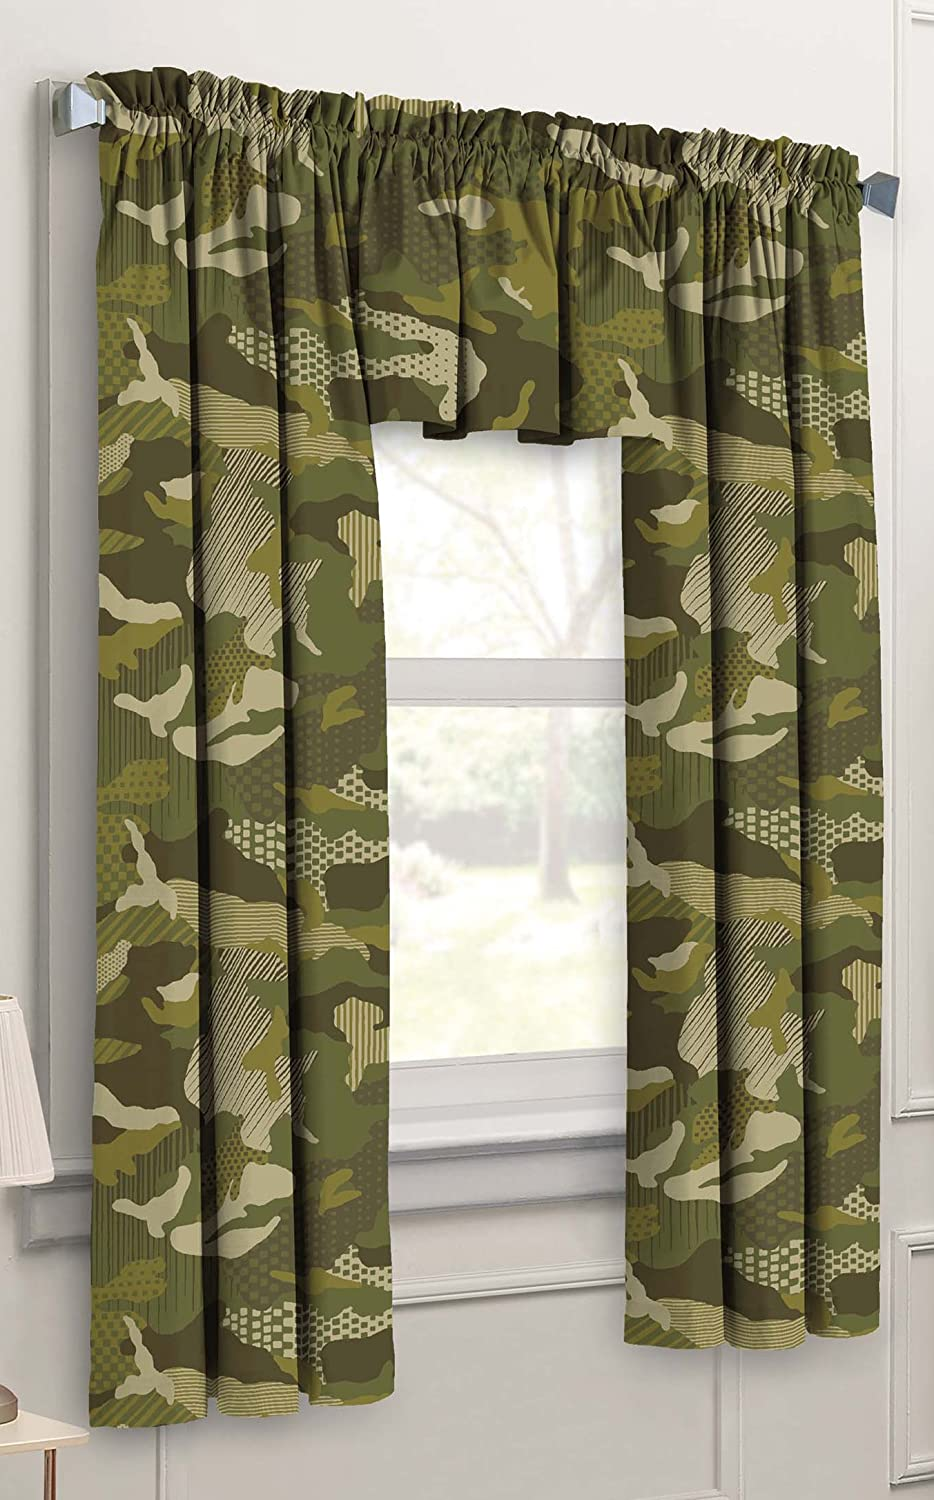 Dream Factory Geo Camo 3-Piece Camouflage Kids Bedroom Curtain Panel Set, Green